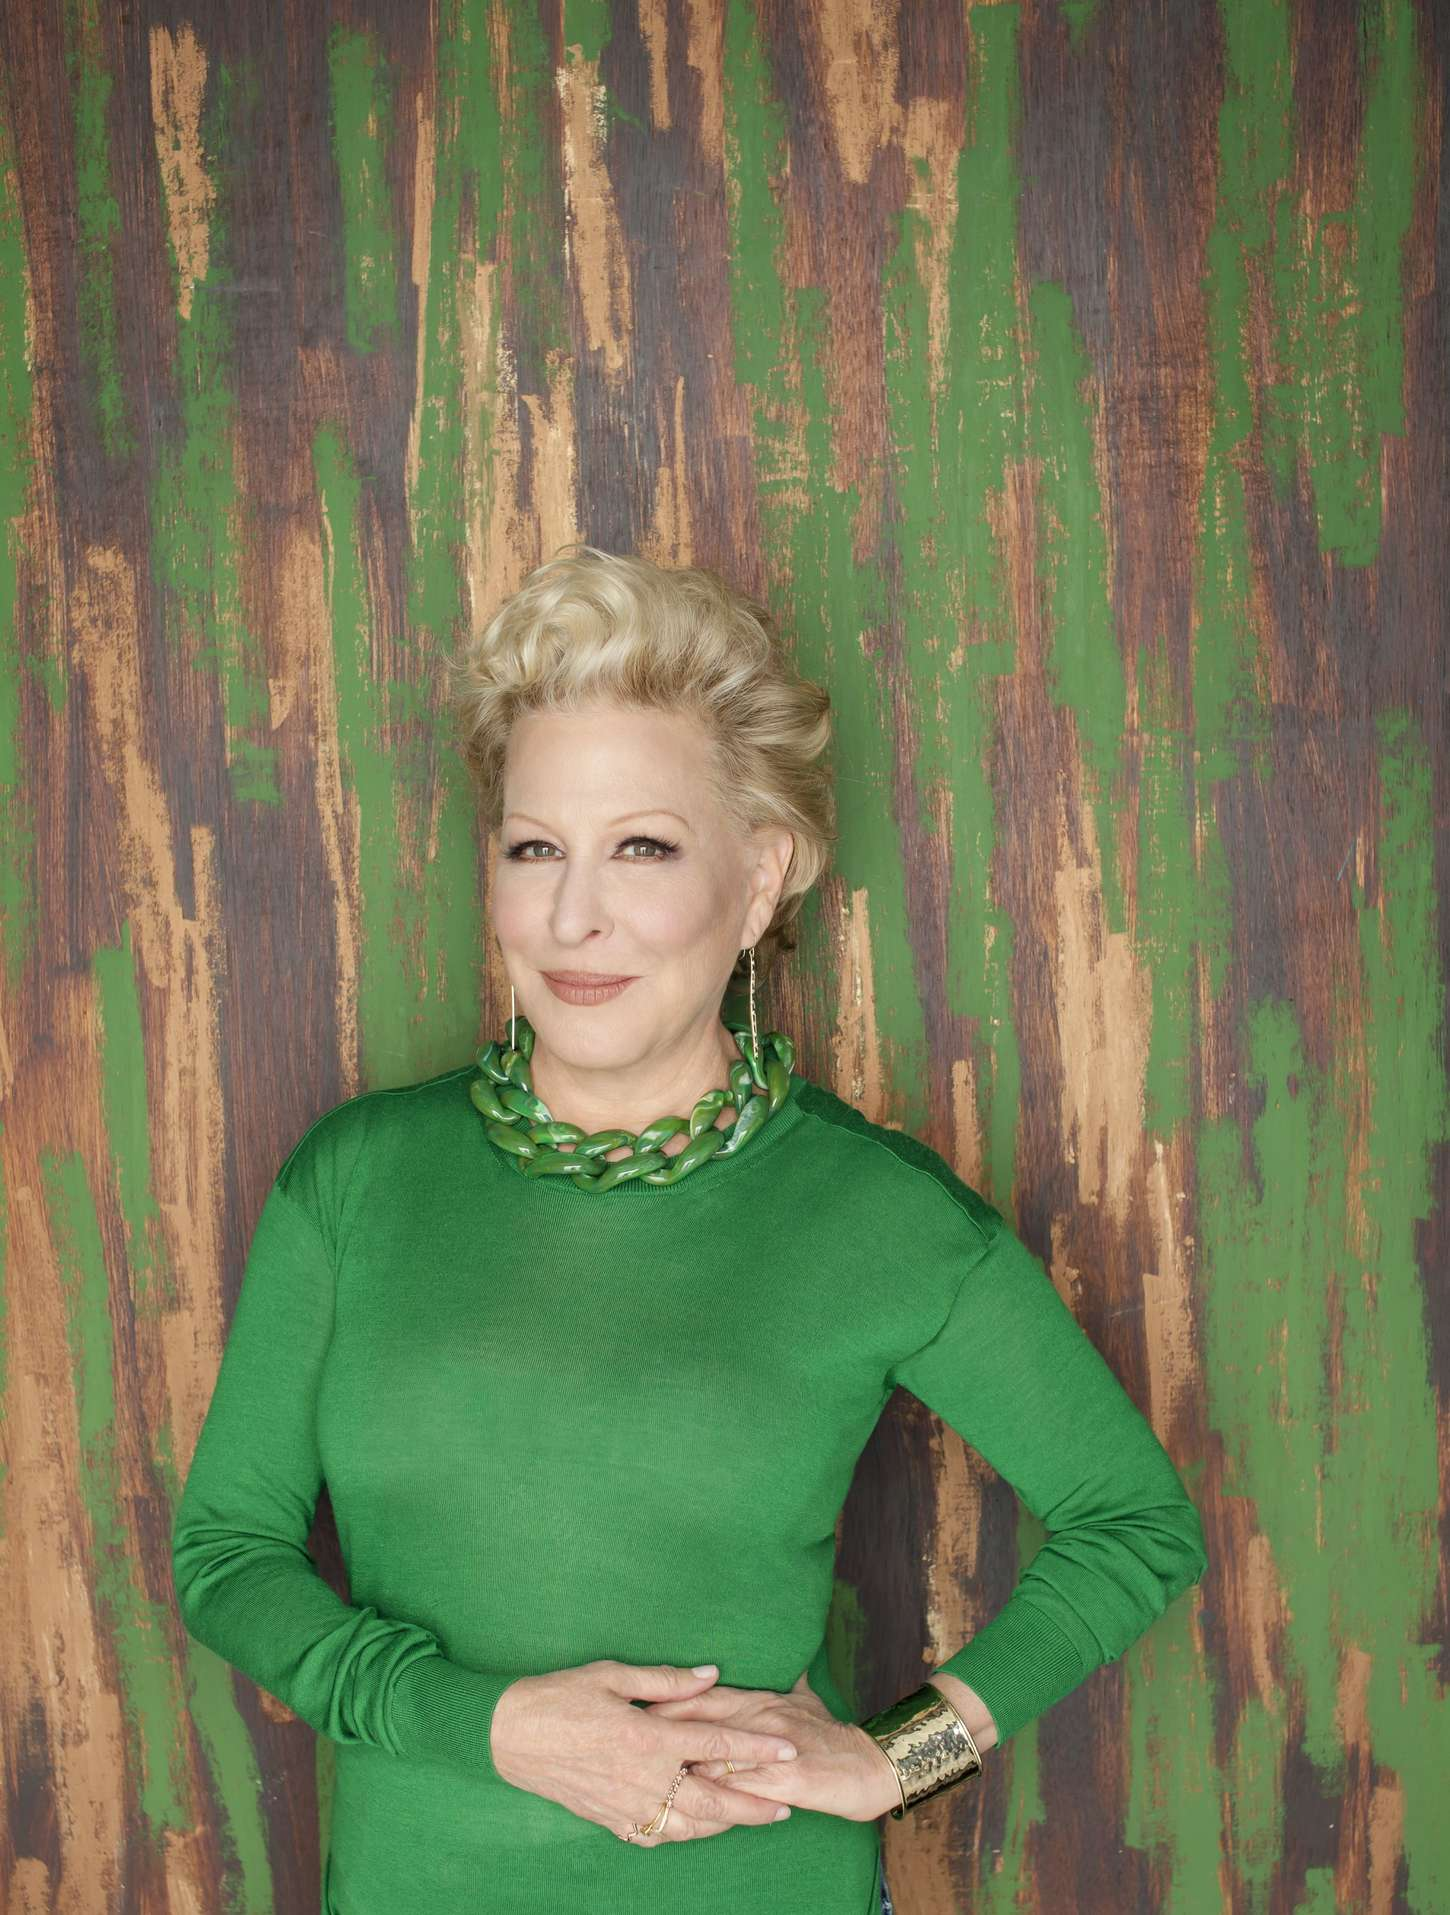 Bette Midler 2014 : Bette Midler: Its The Girls Album Promoshoot 2014 -04